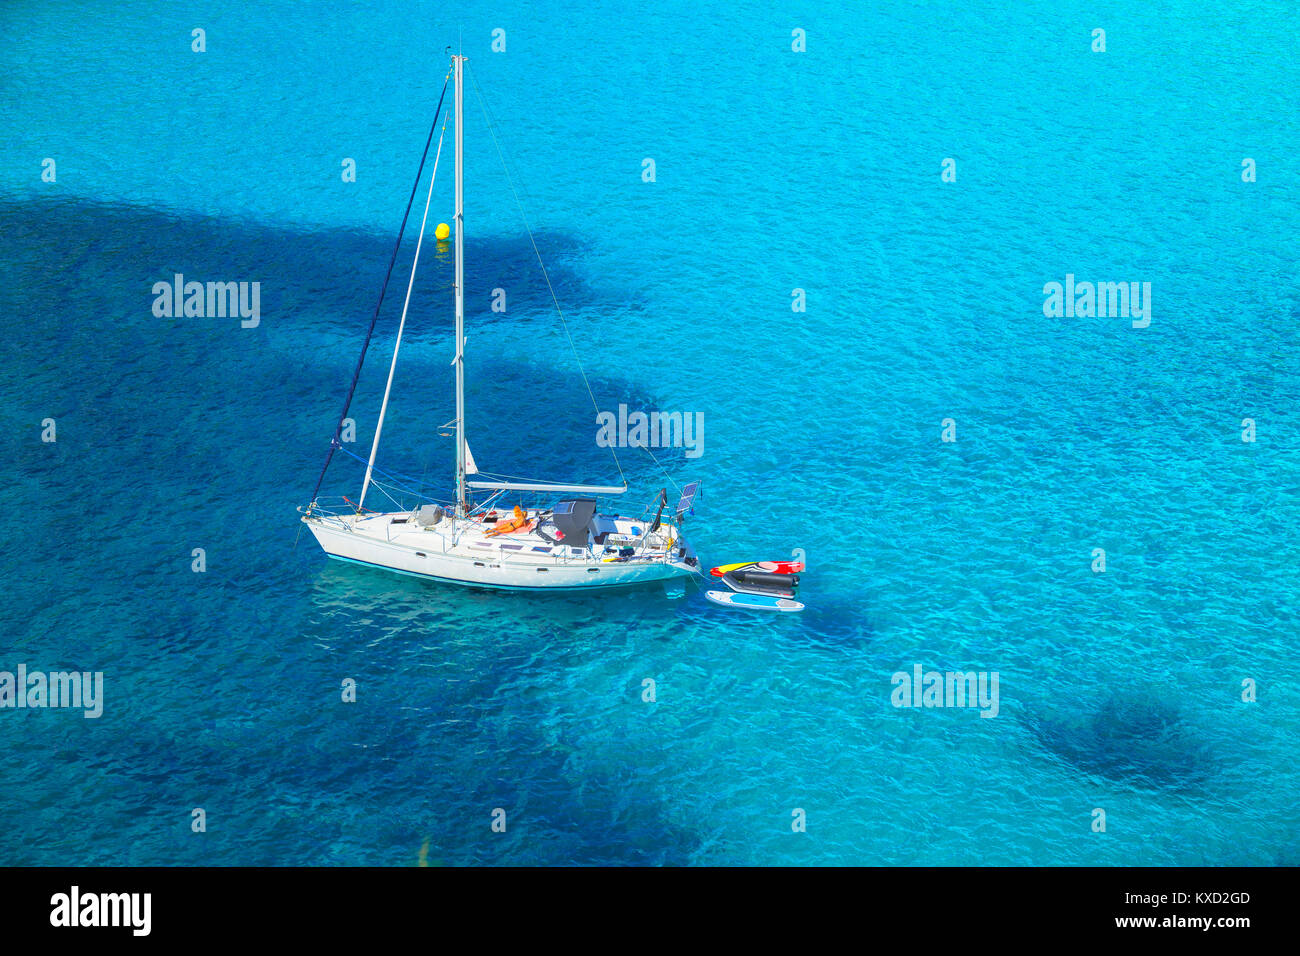 View of Cala Macarella and sailboat, Menorca, Balearic Islands, Spain - Stock Image